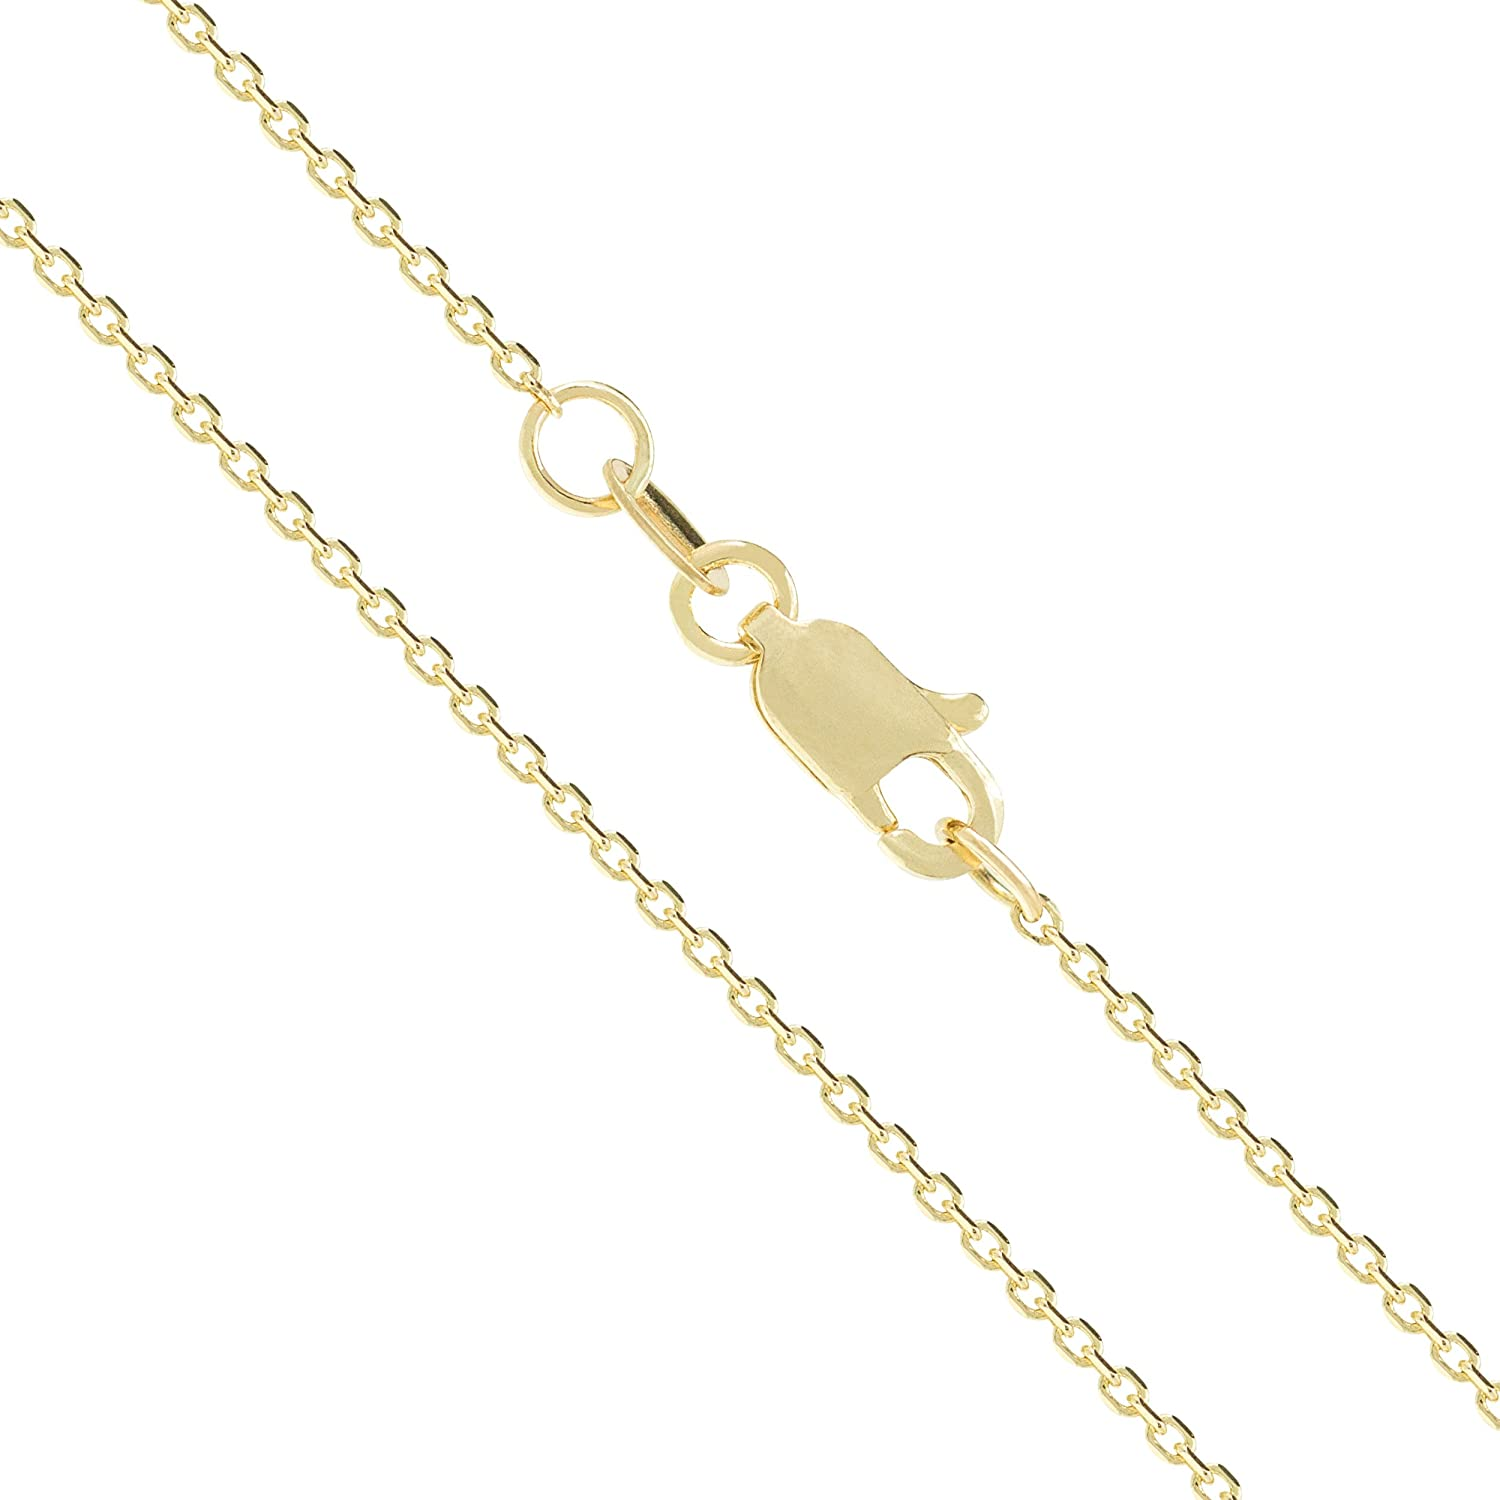 Honolulu Jewelry Company 14K Solid Yellow Gold Cable Chain Necklace